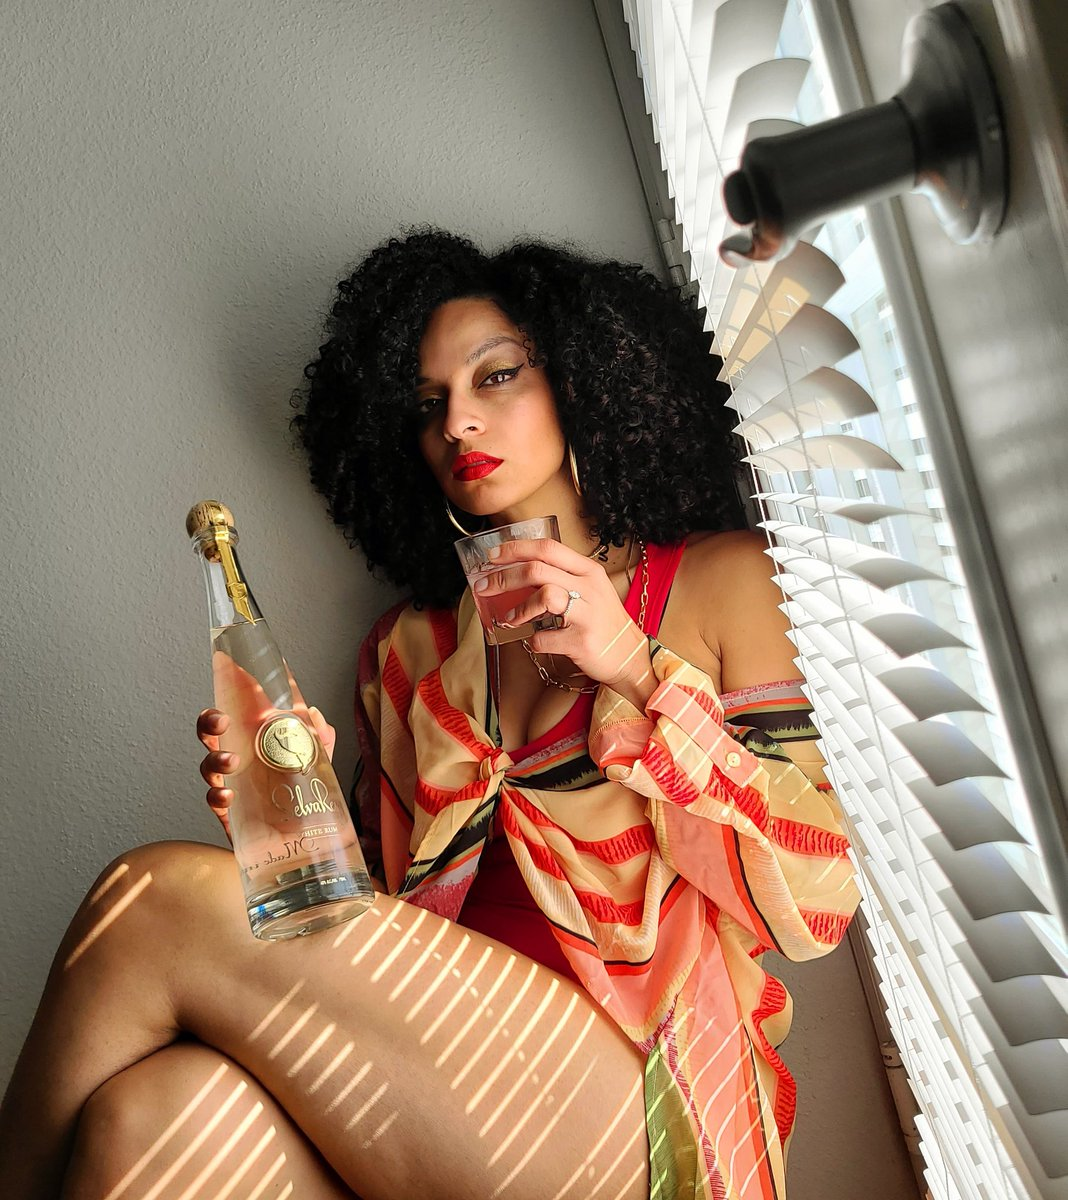 Tropical Luxury...at home with @SelvaReyRum 🌴🌴 #CheviRed #Selvareyrum #tropicalluxury #latina #blackgirlmagic #mixedlikemybeats #dj #tropicalvibes #sexy #rum #luxury #follow